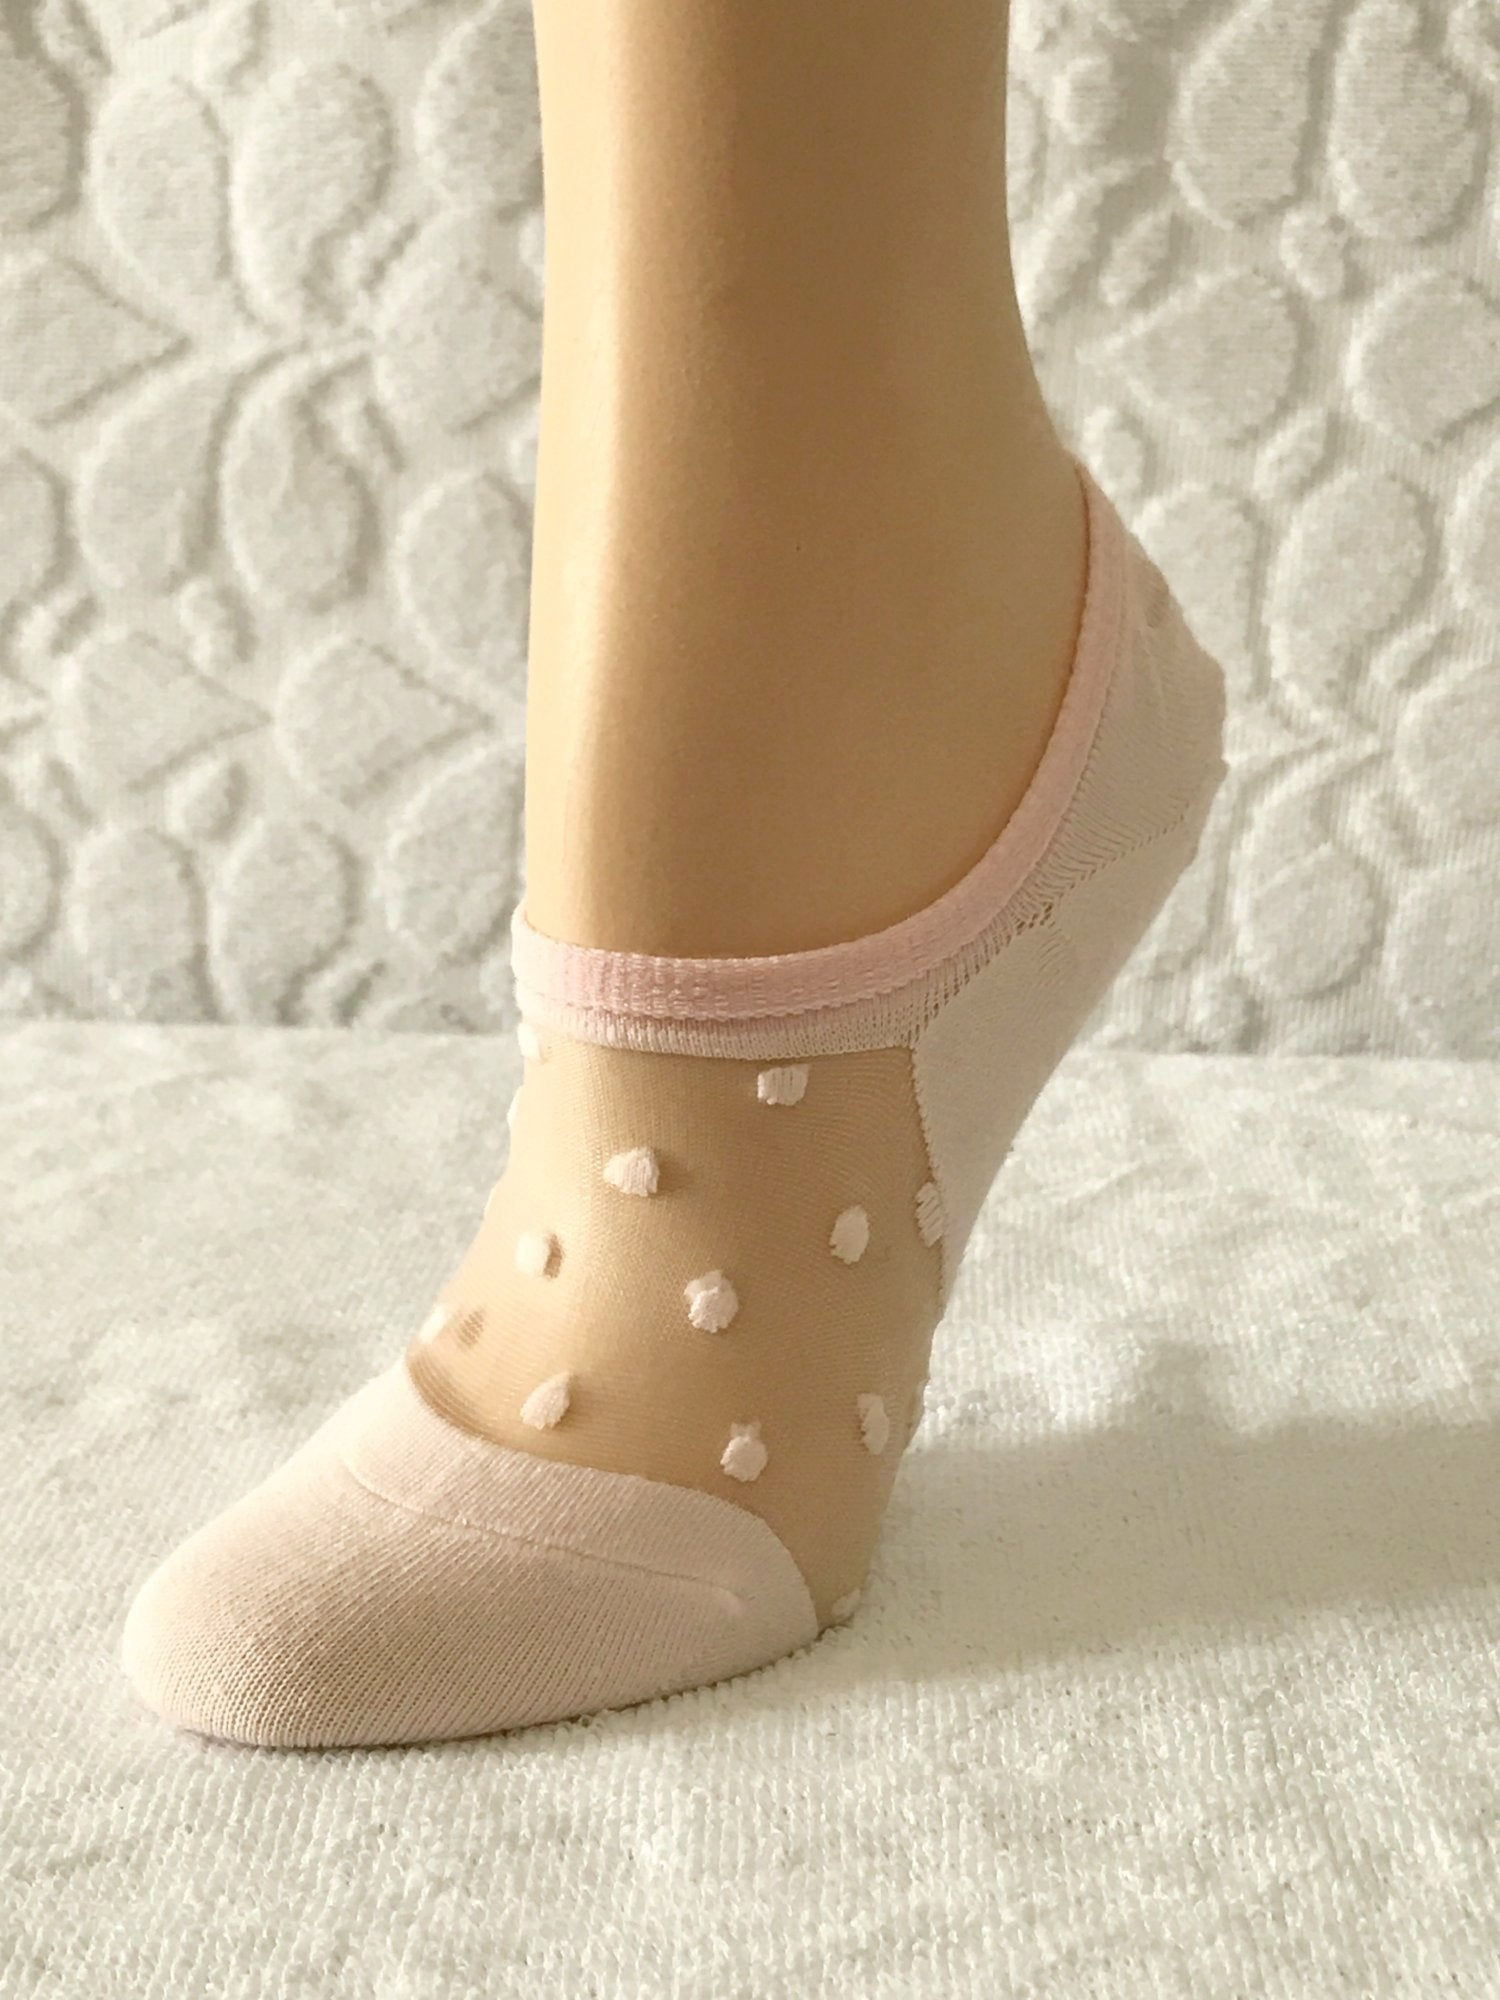 Dotted Creamy Pink Ankle Sheer Socks - Global Trendz Fashion®